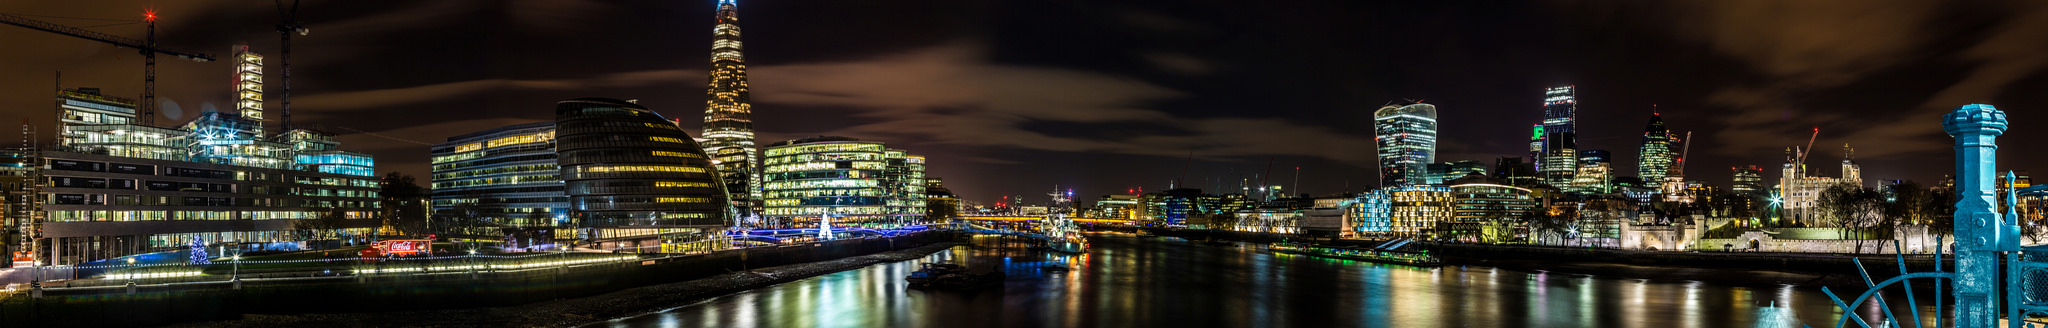 London city view